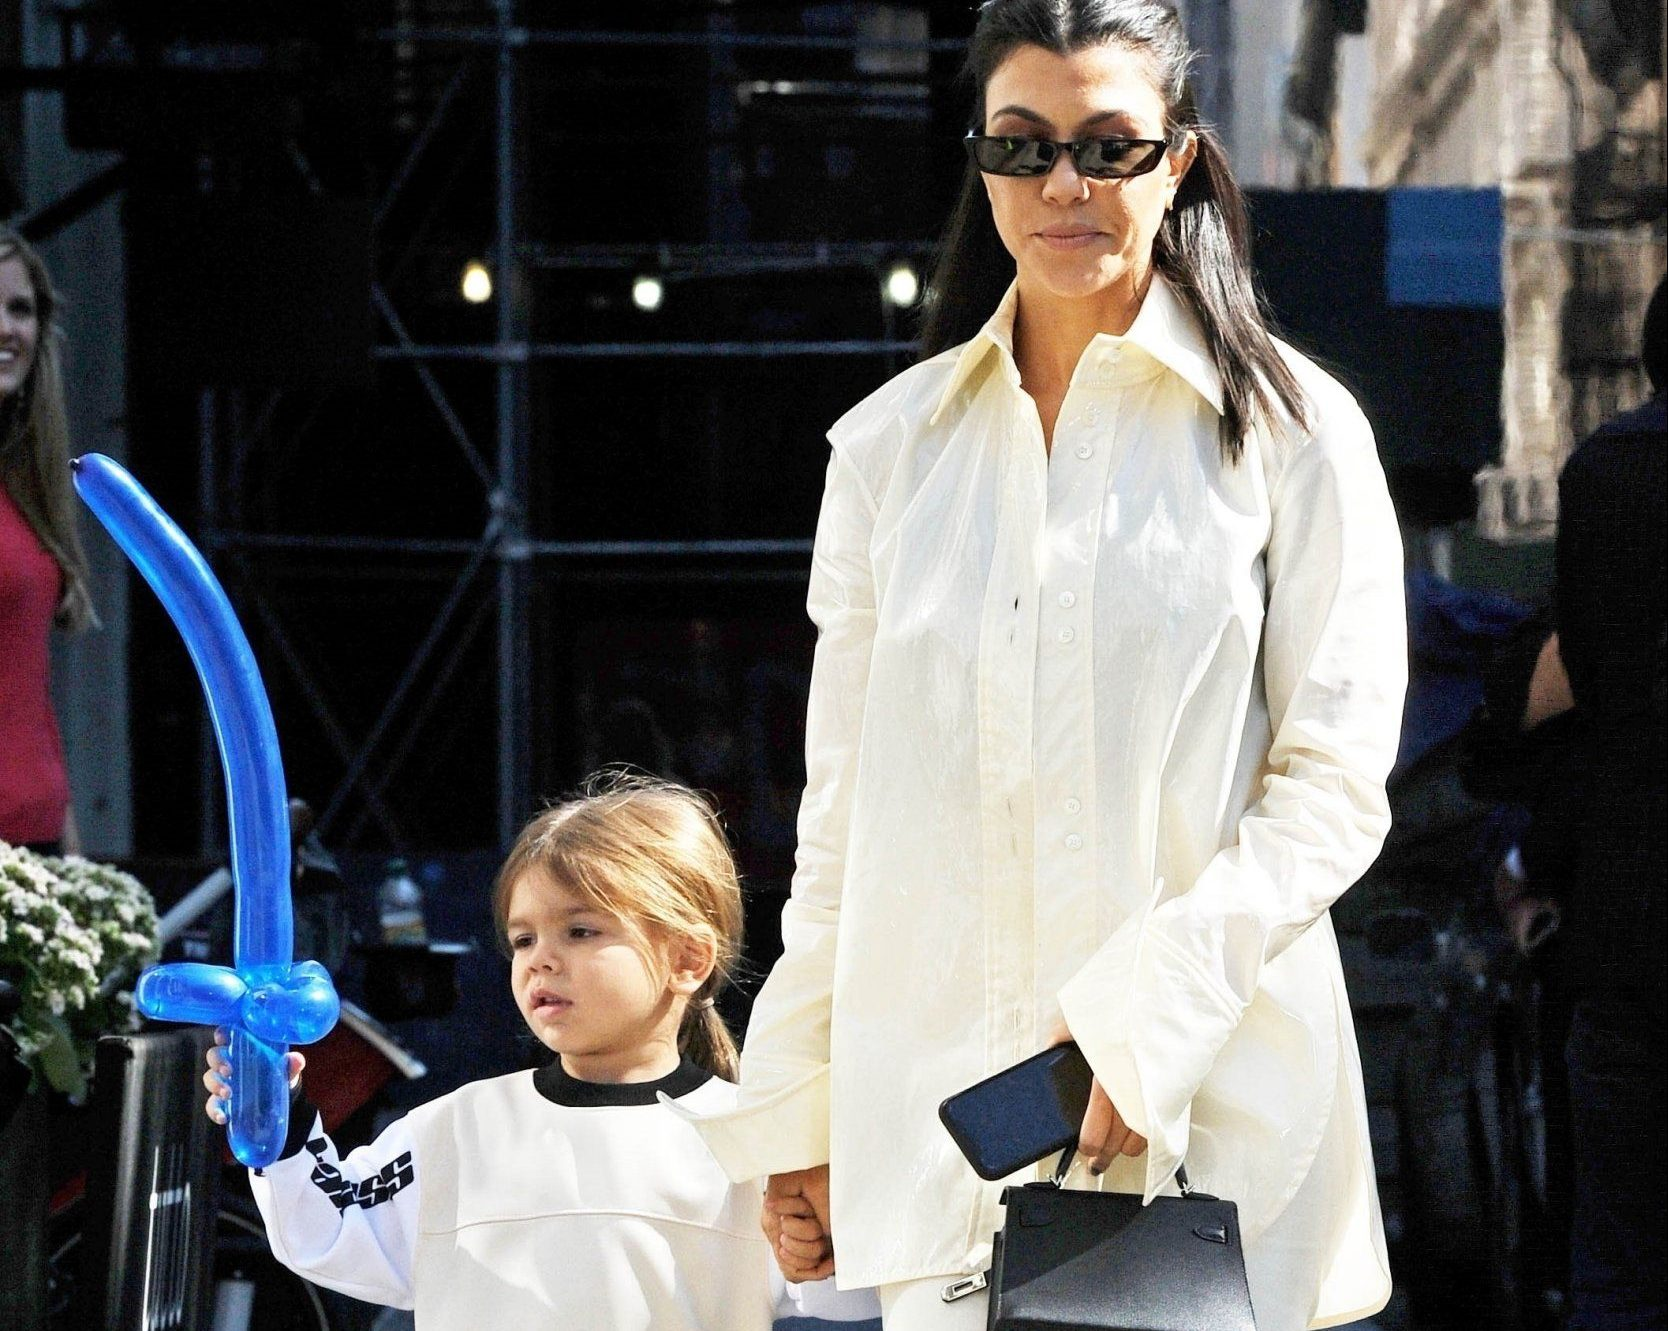 New York, NY - Kourtney Kardashian and her son Reign leave Tutto Il Giorno after a friend's birthday party. Kourtney wows in all white as she leaves the venue hand in hand with her youngest son. Pictured: Kourtney Kardashian BACKGRID USA 30 SEPTEMBER 2018 BYLINE MUST READ: JosiahW / BACKGRID USA: +1 310 798 9111 / usasales@backgrid.com UK: +44 208 344 2007 / uksales@backgrid.com *UK Clients - Pictures Containing Children Please Pixelate Face Prior To Publication*